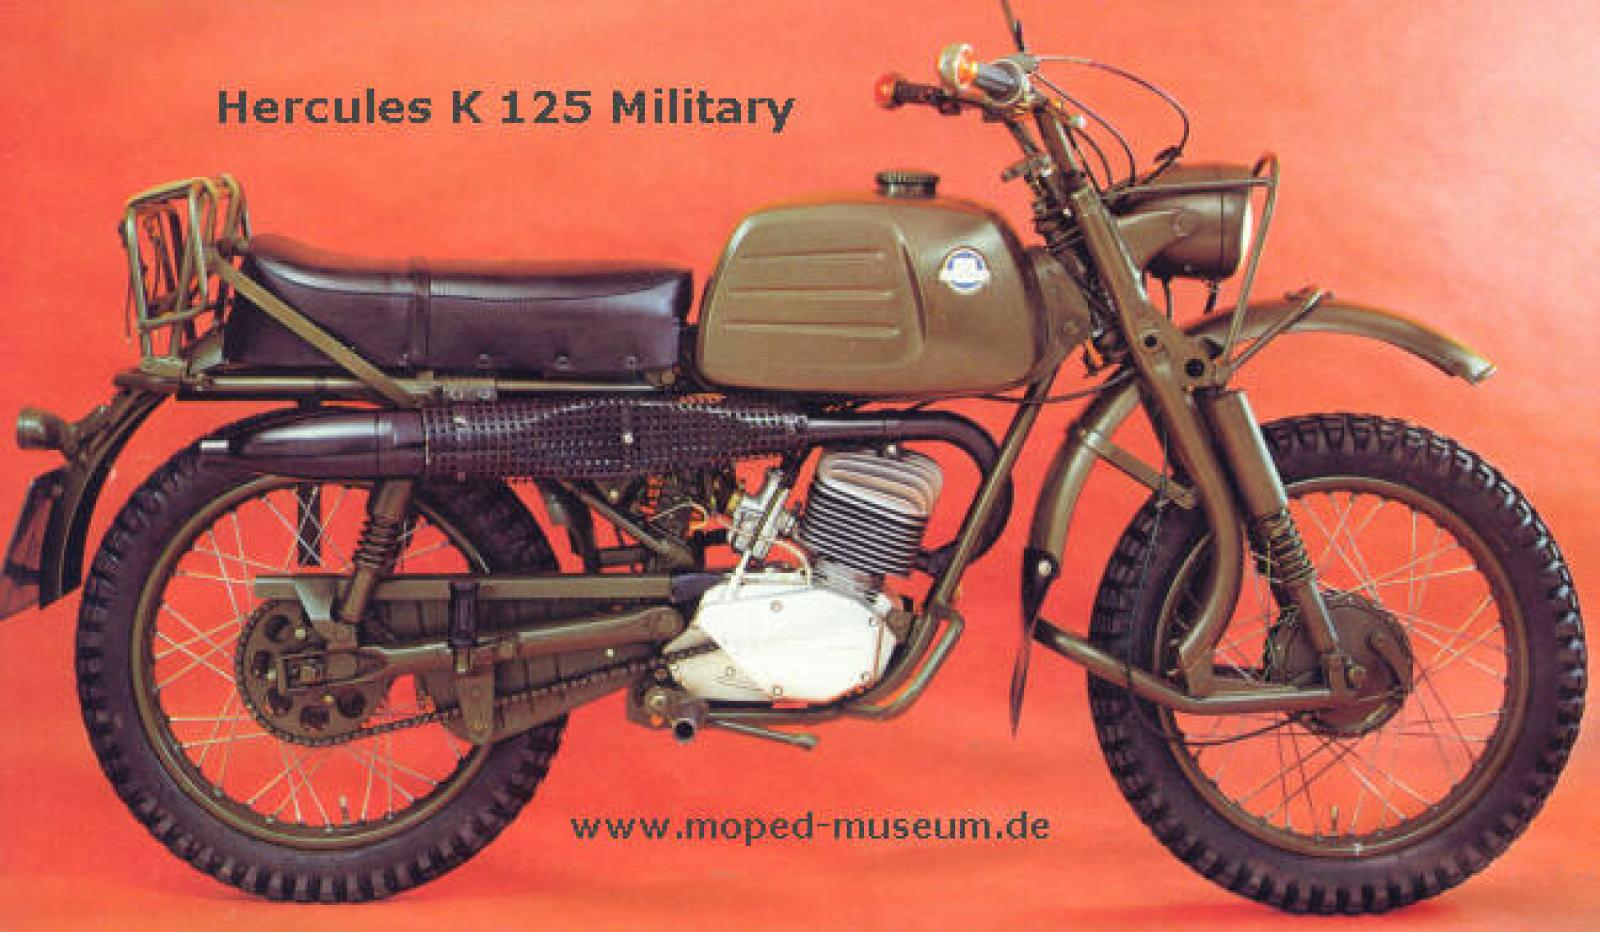 Hercules K 125 Military 1987 images #147205